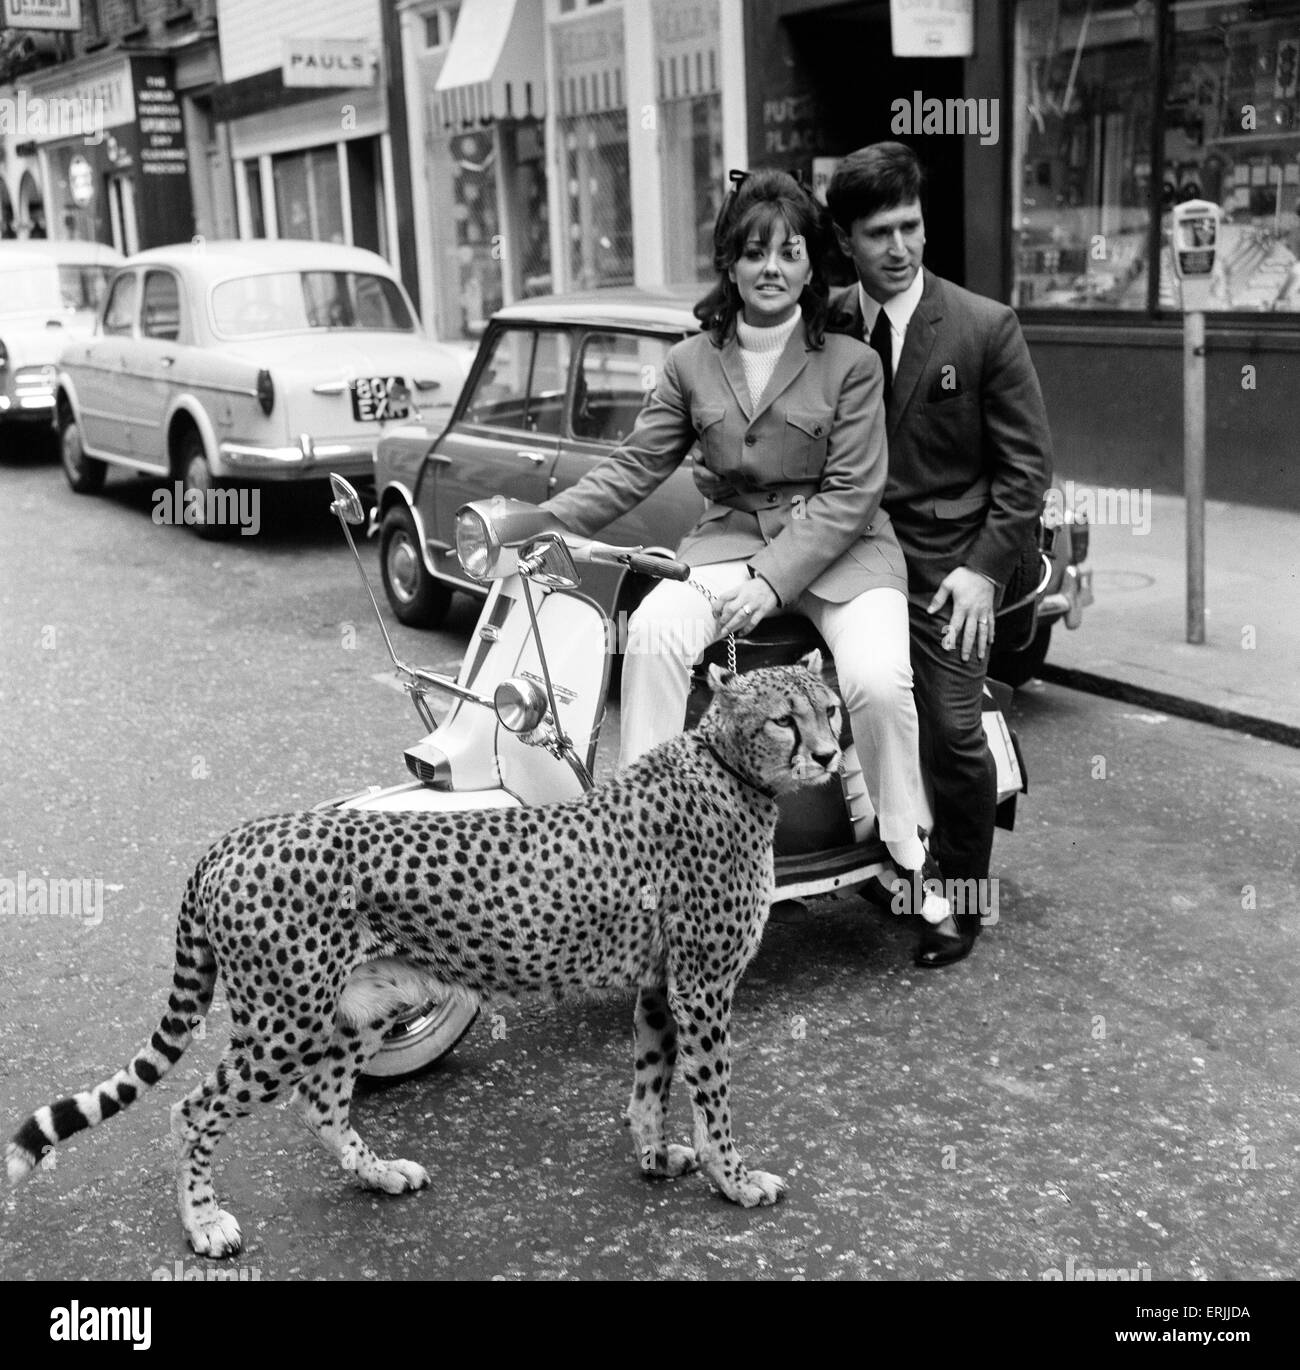 Carnaby Street, London, 4th April 1966. Photo-call for opening of new Tomcat Shop. Kinna the Cheetah with model - Stock Image